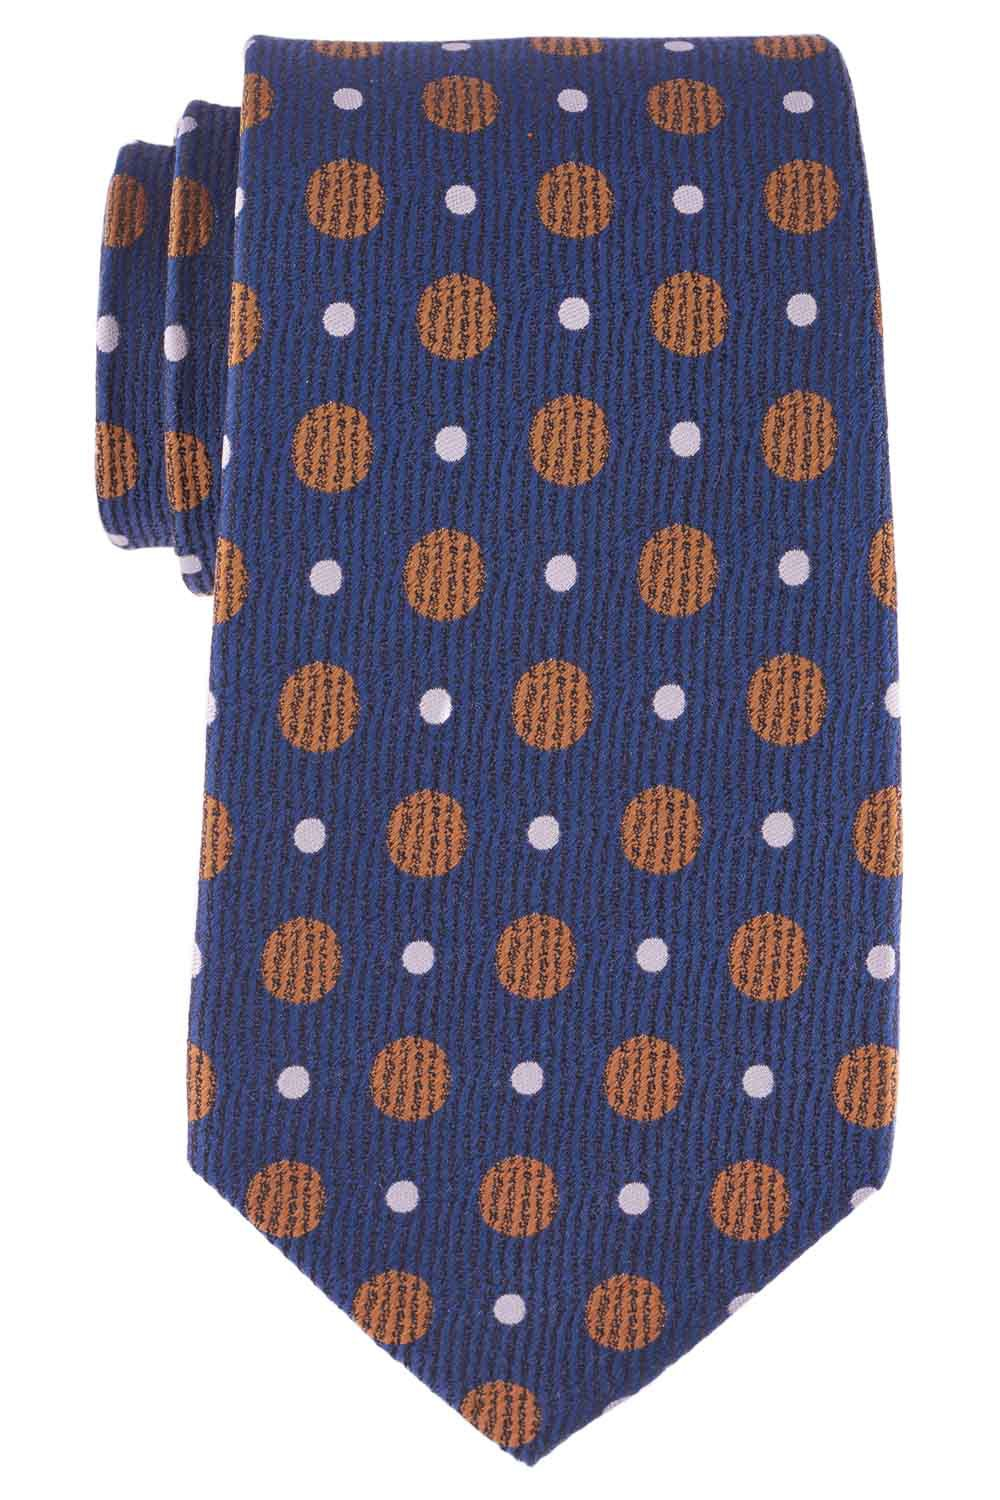 Blue Silk 7 Fold Necktie With Golden And White Dots By The Tie Hub